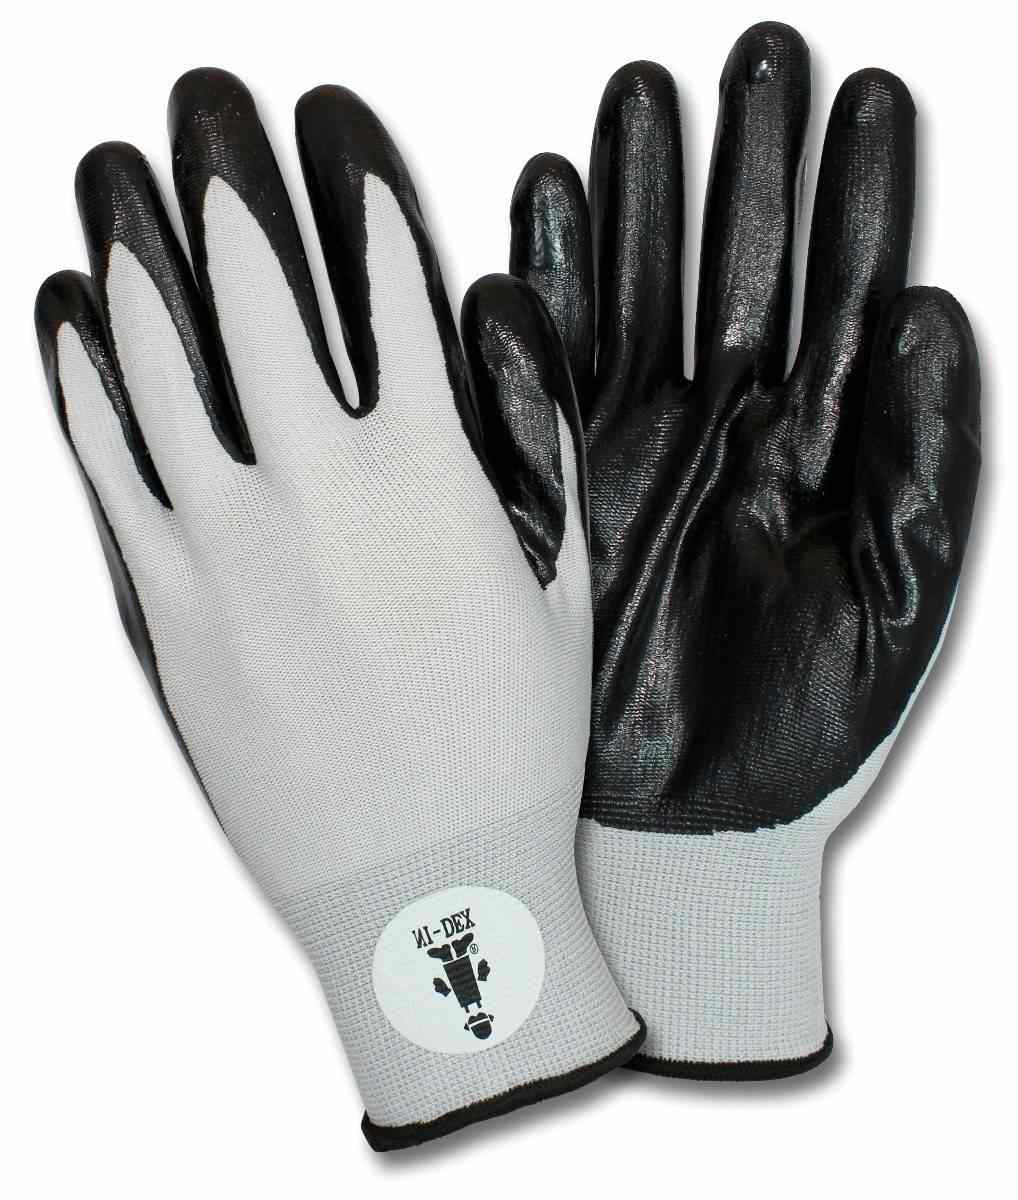 Safety Zone G Nidex High Dexterity Nitrile Coated Gloves